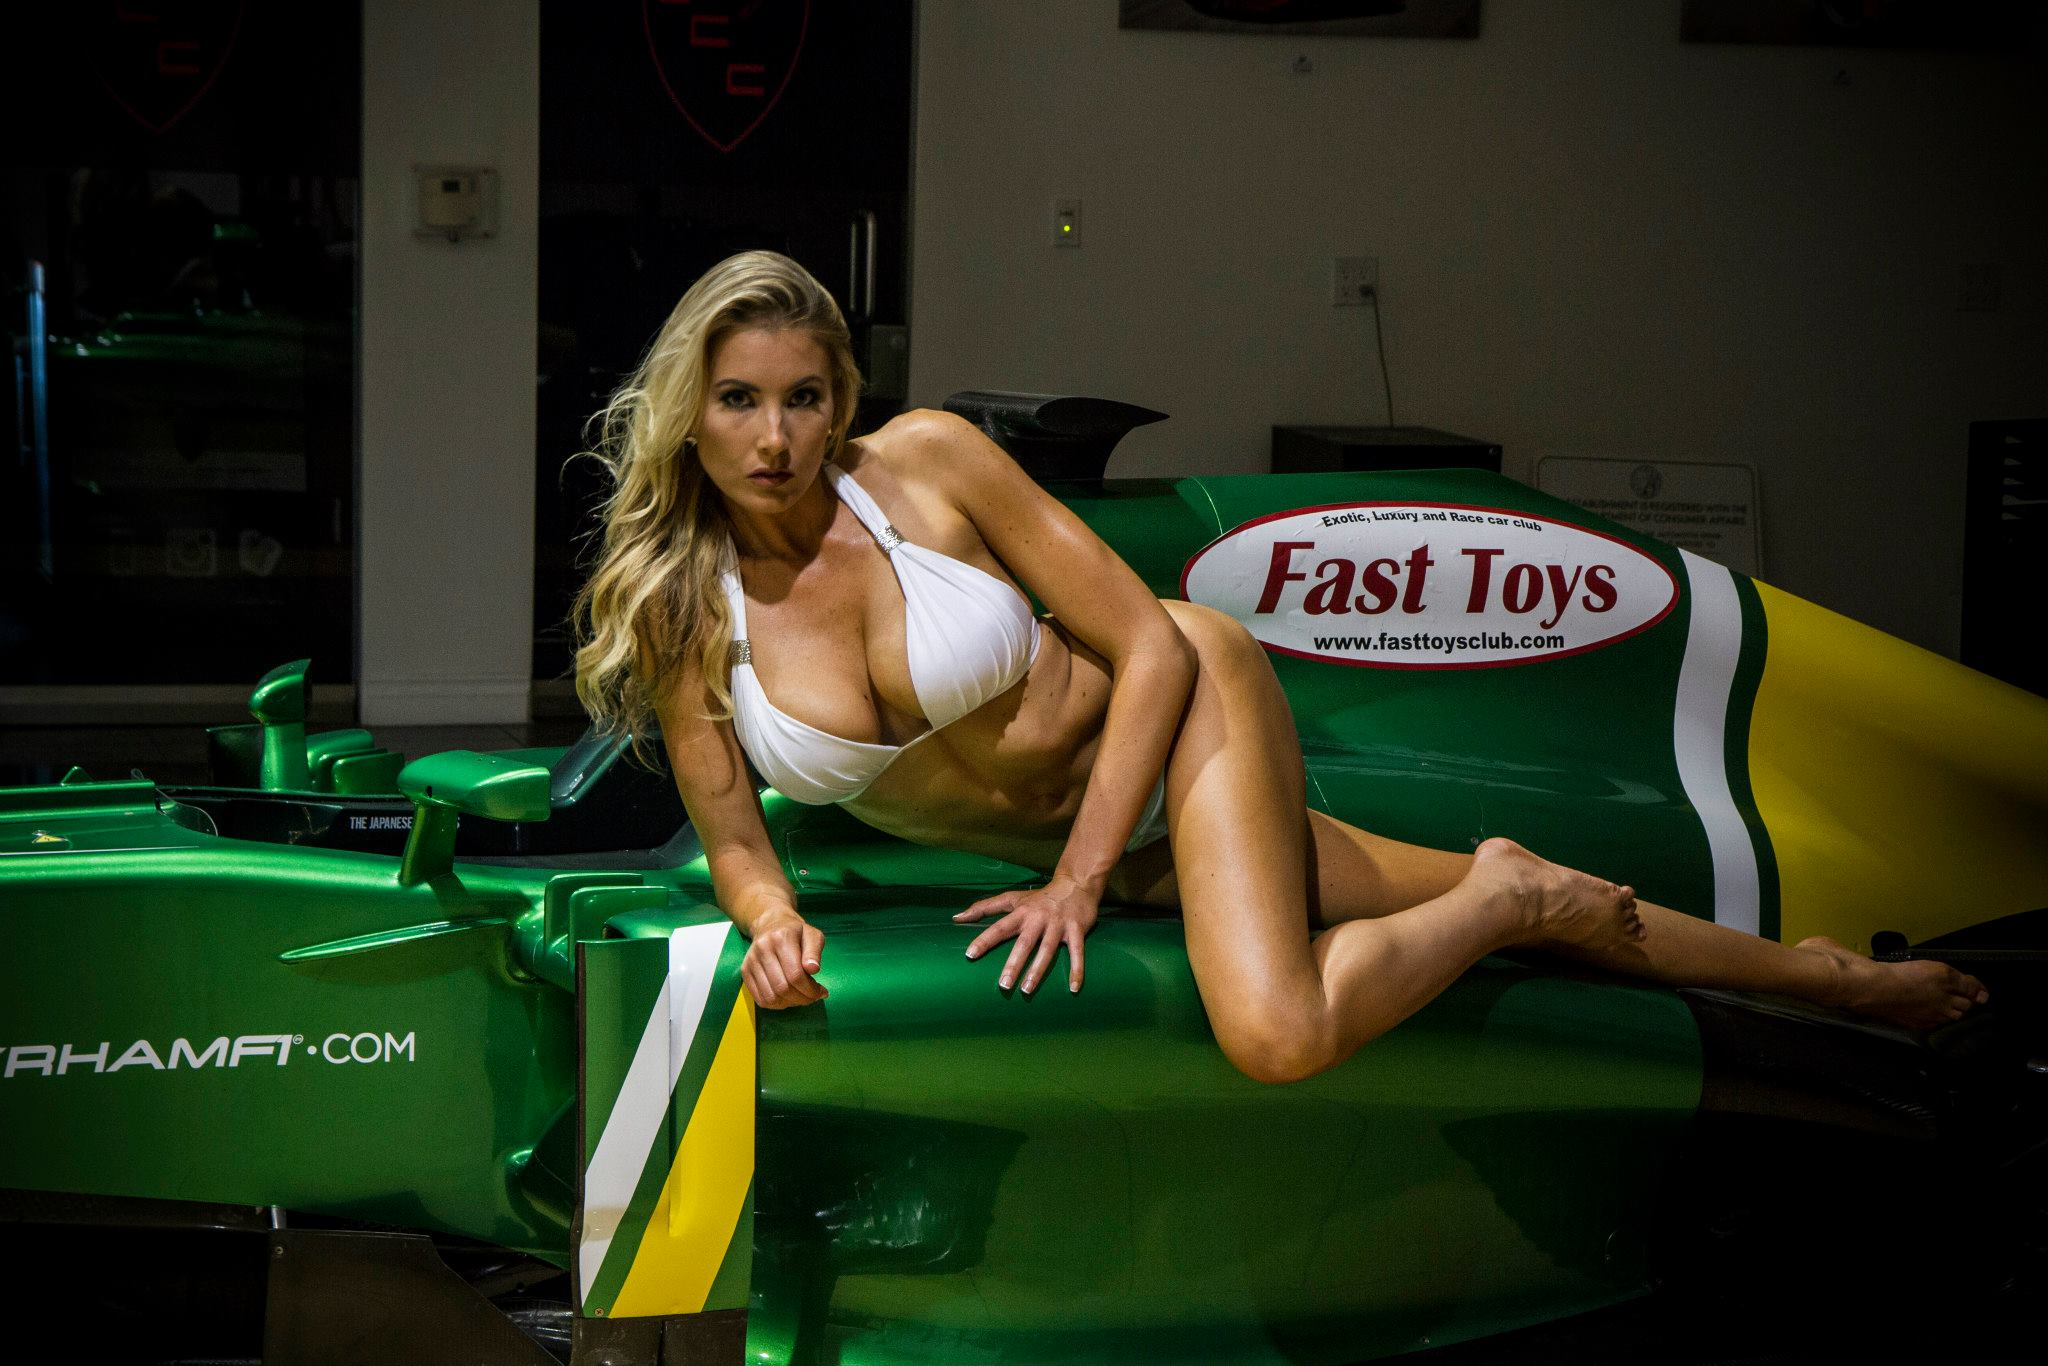 Bikini Blonde Christina Riordan Poses On Caterham Formula 1 Car Autoevolution